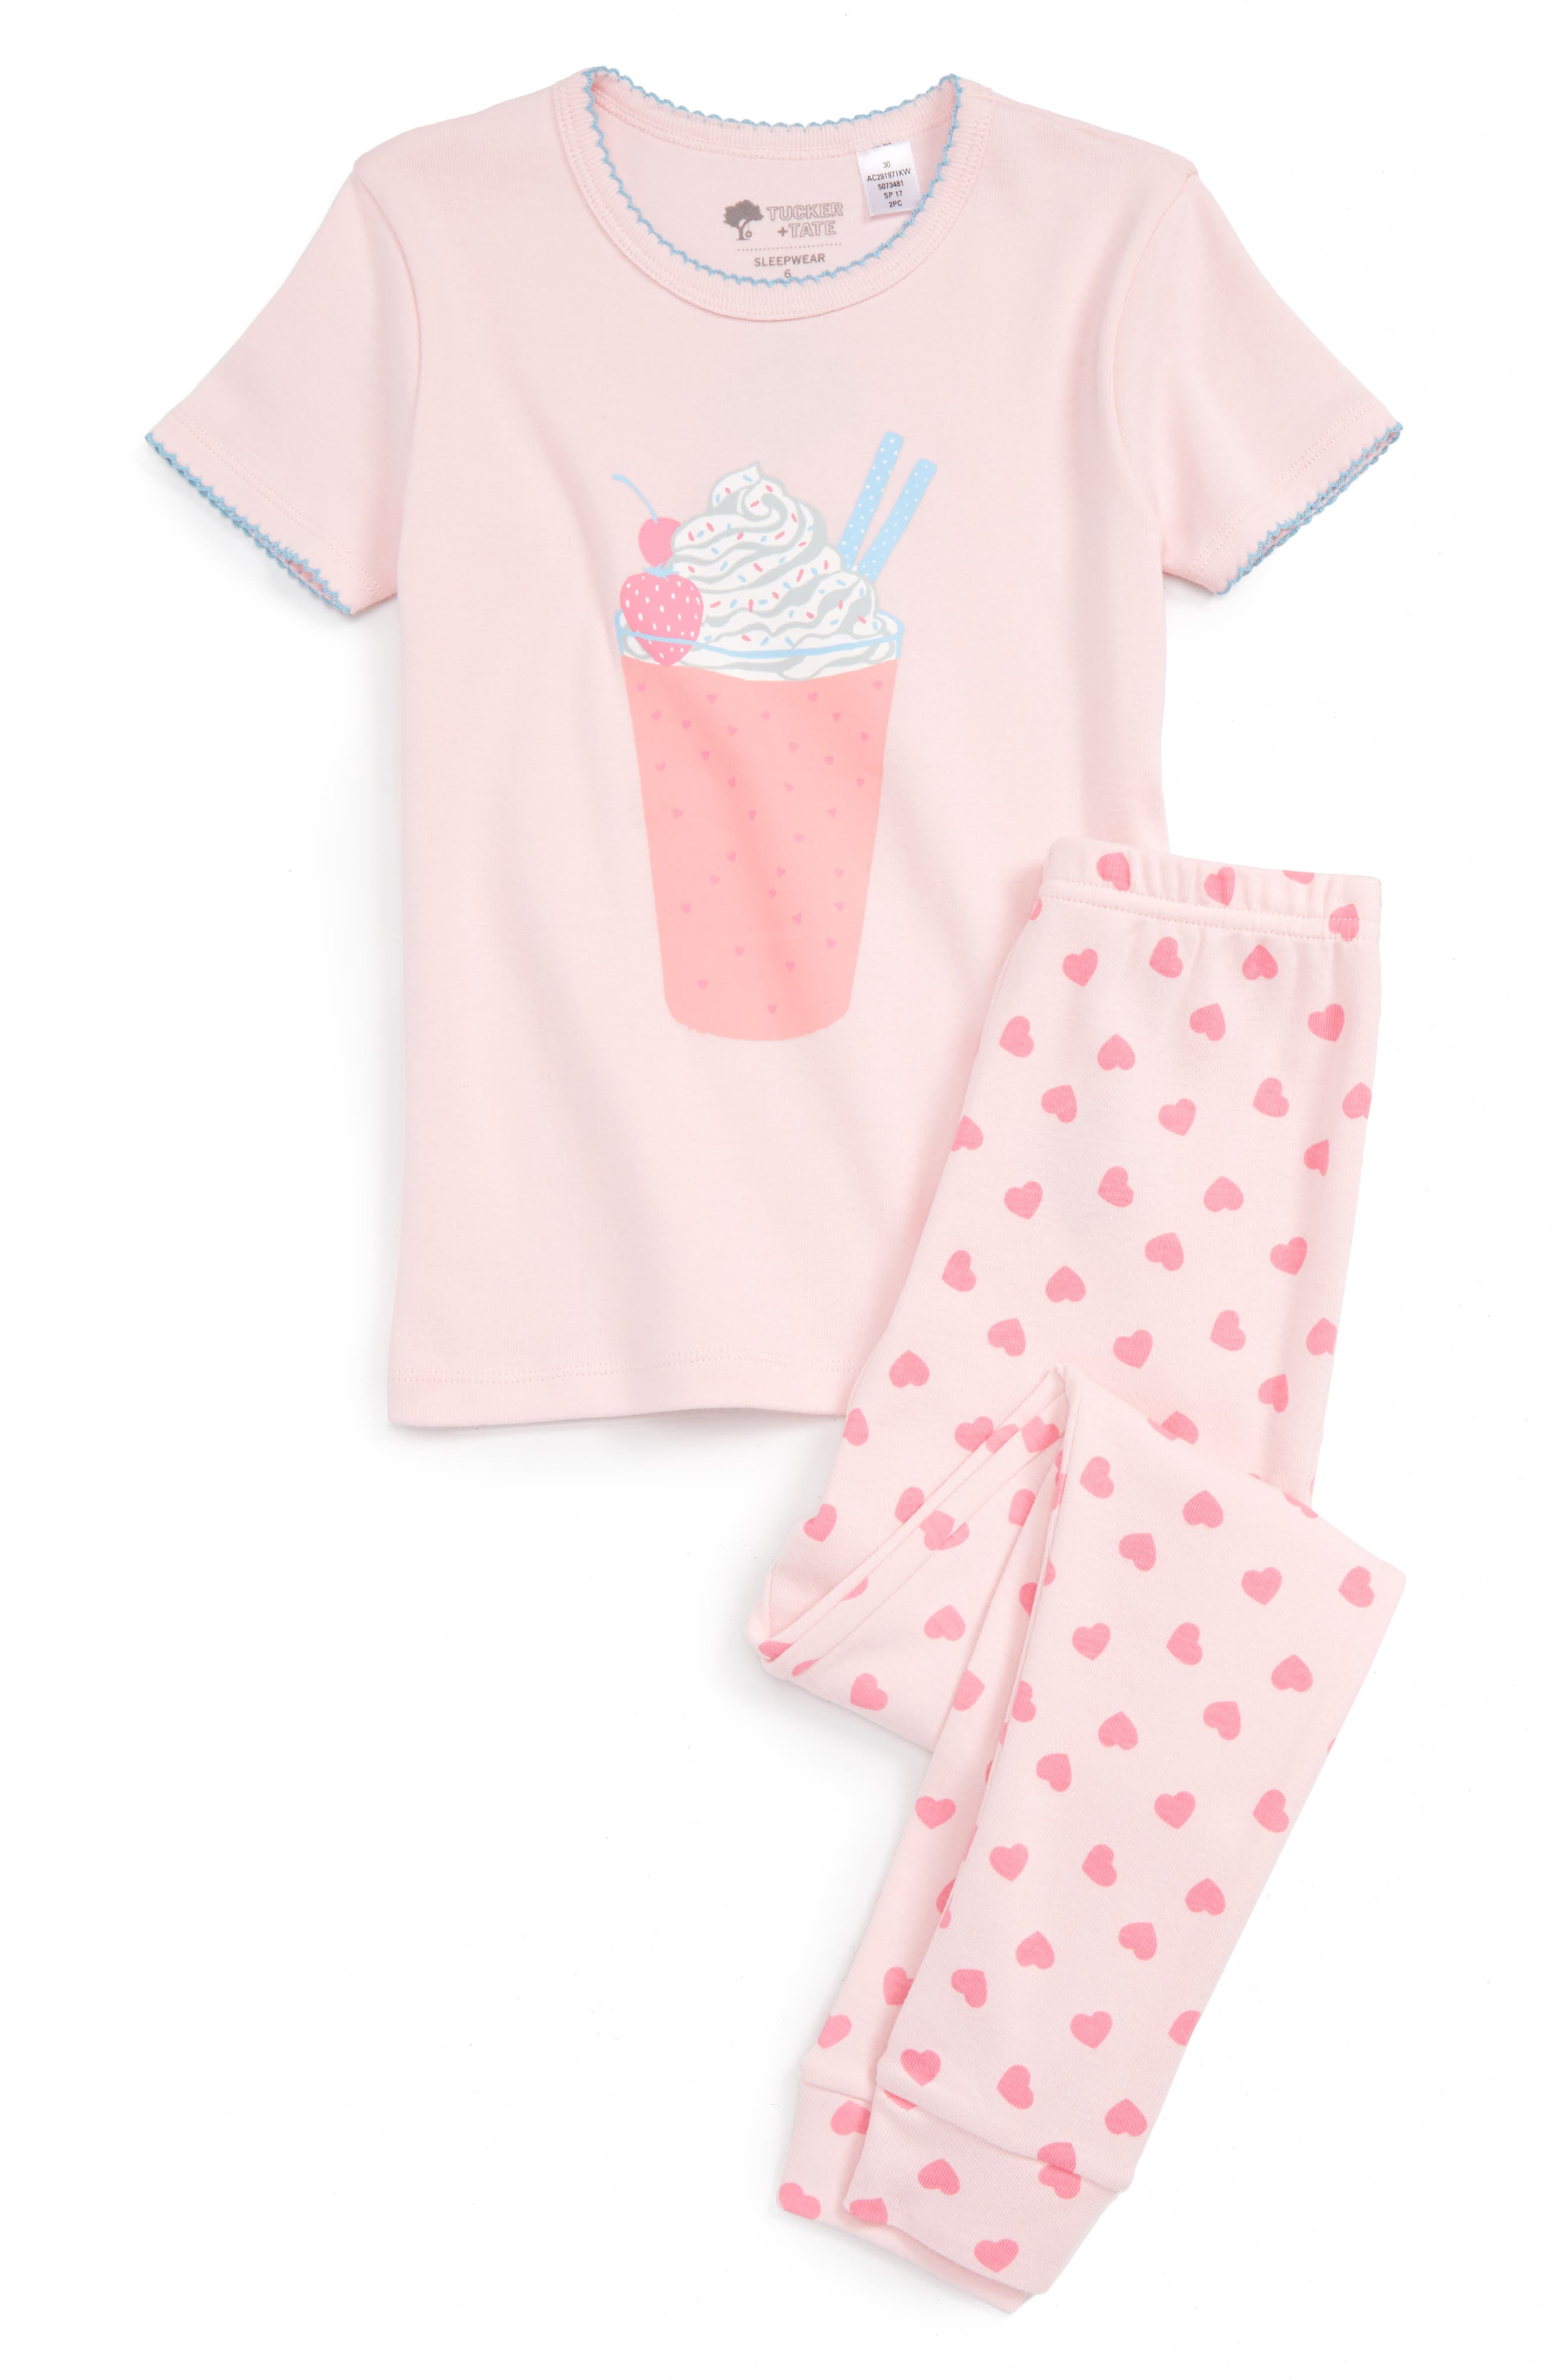 TUCKER + TATE Two-Piece Fitted Pajamas